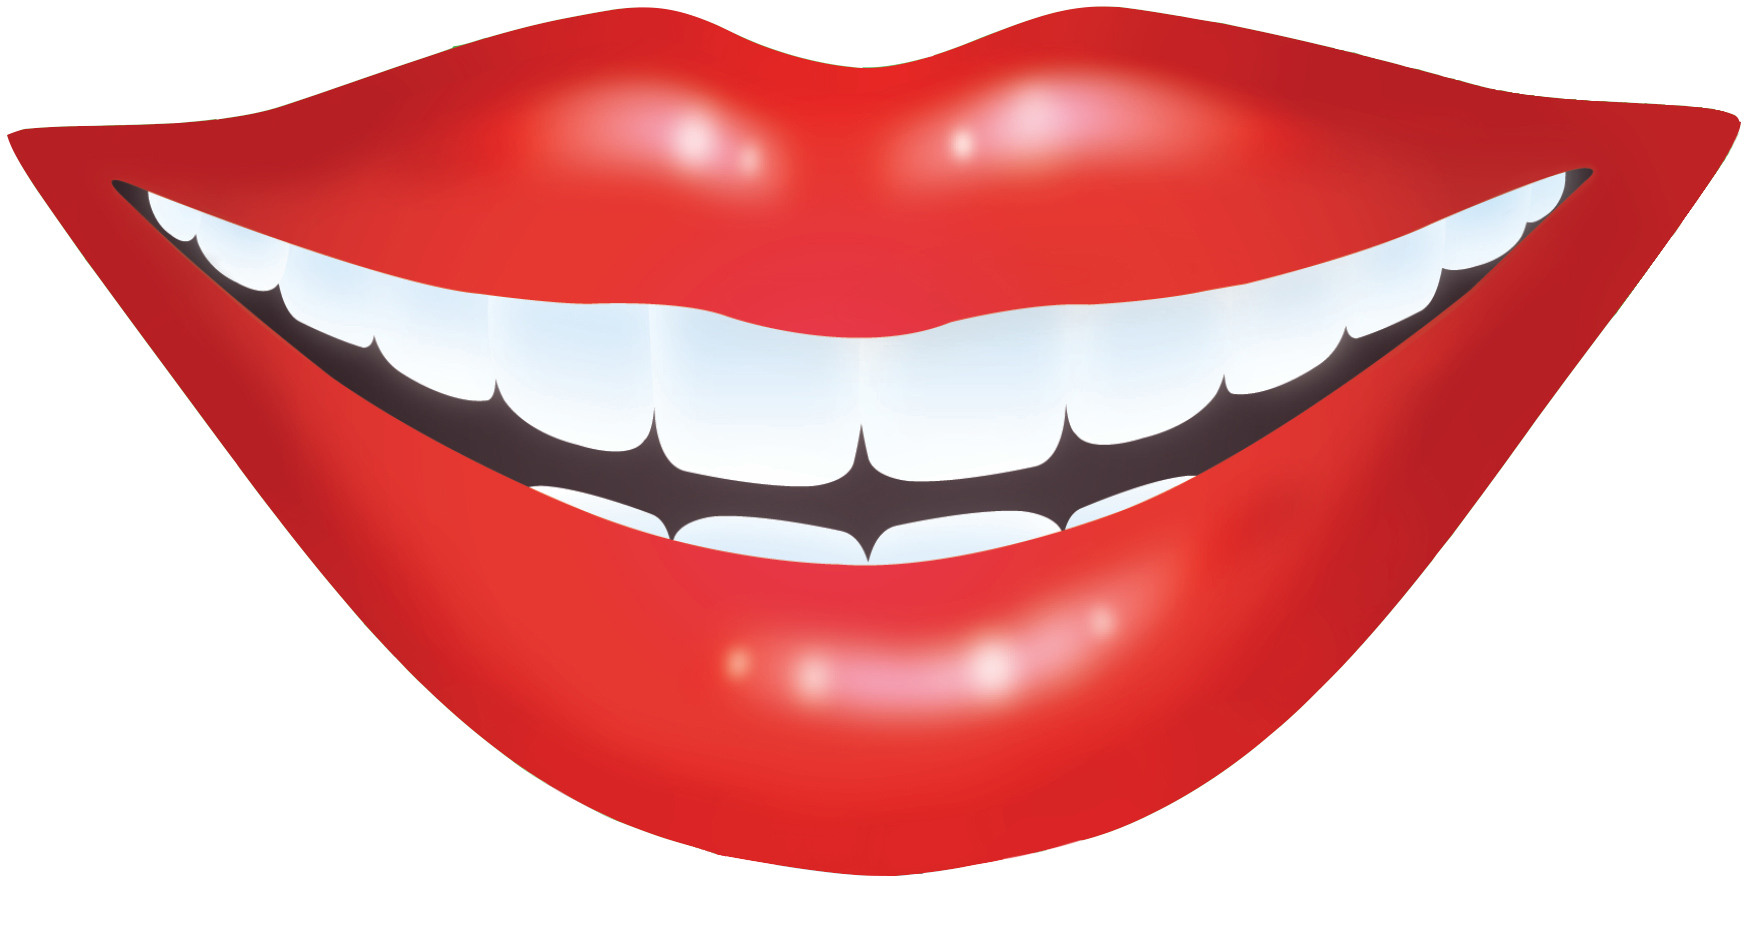 Lips animated. Smiling mouth clipart free